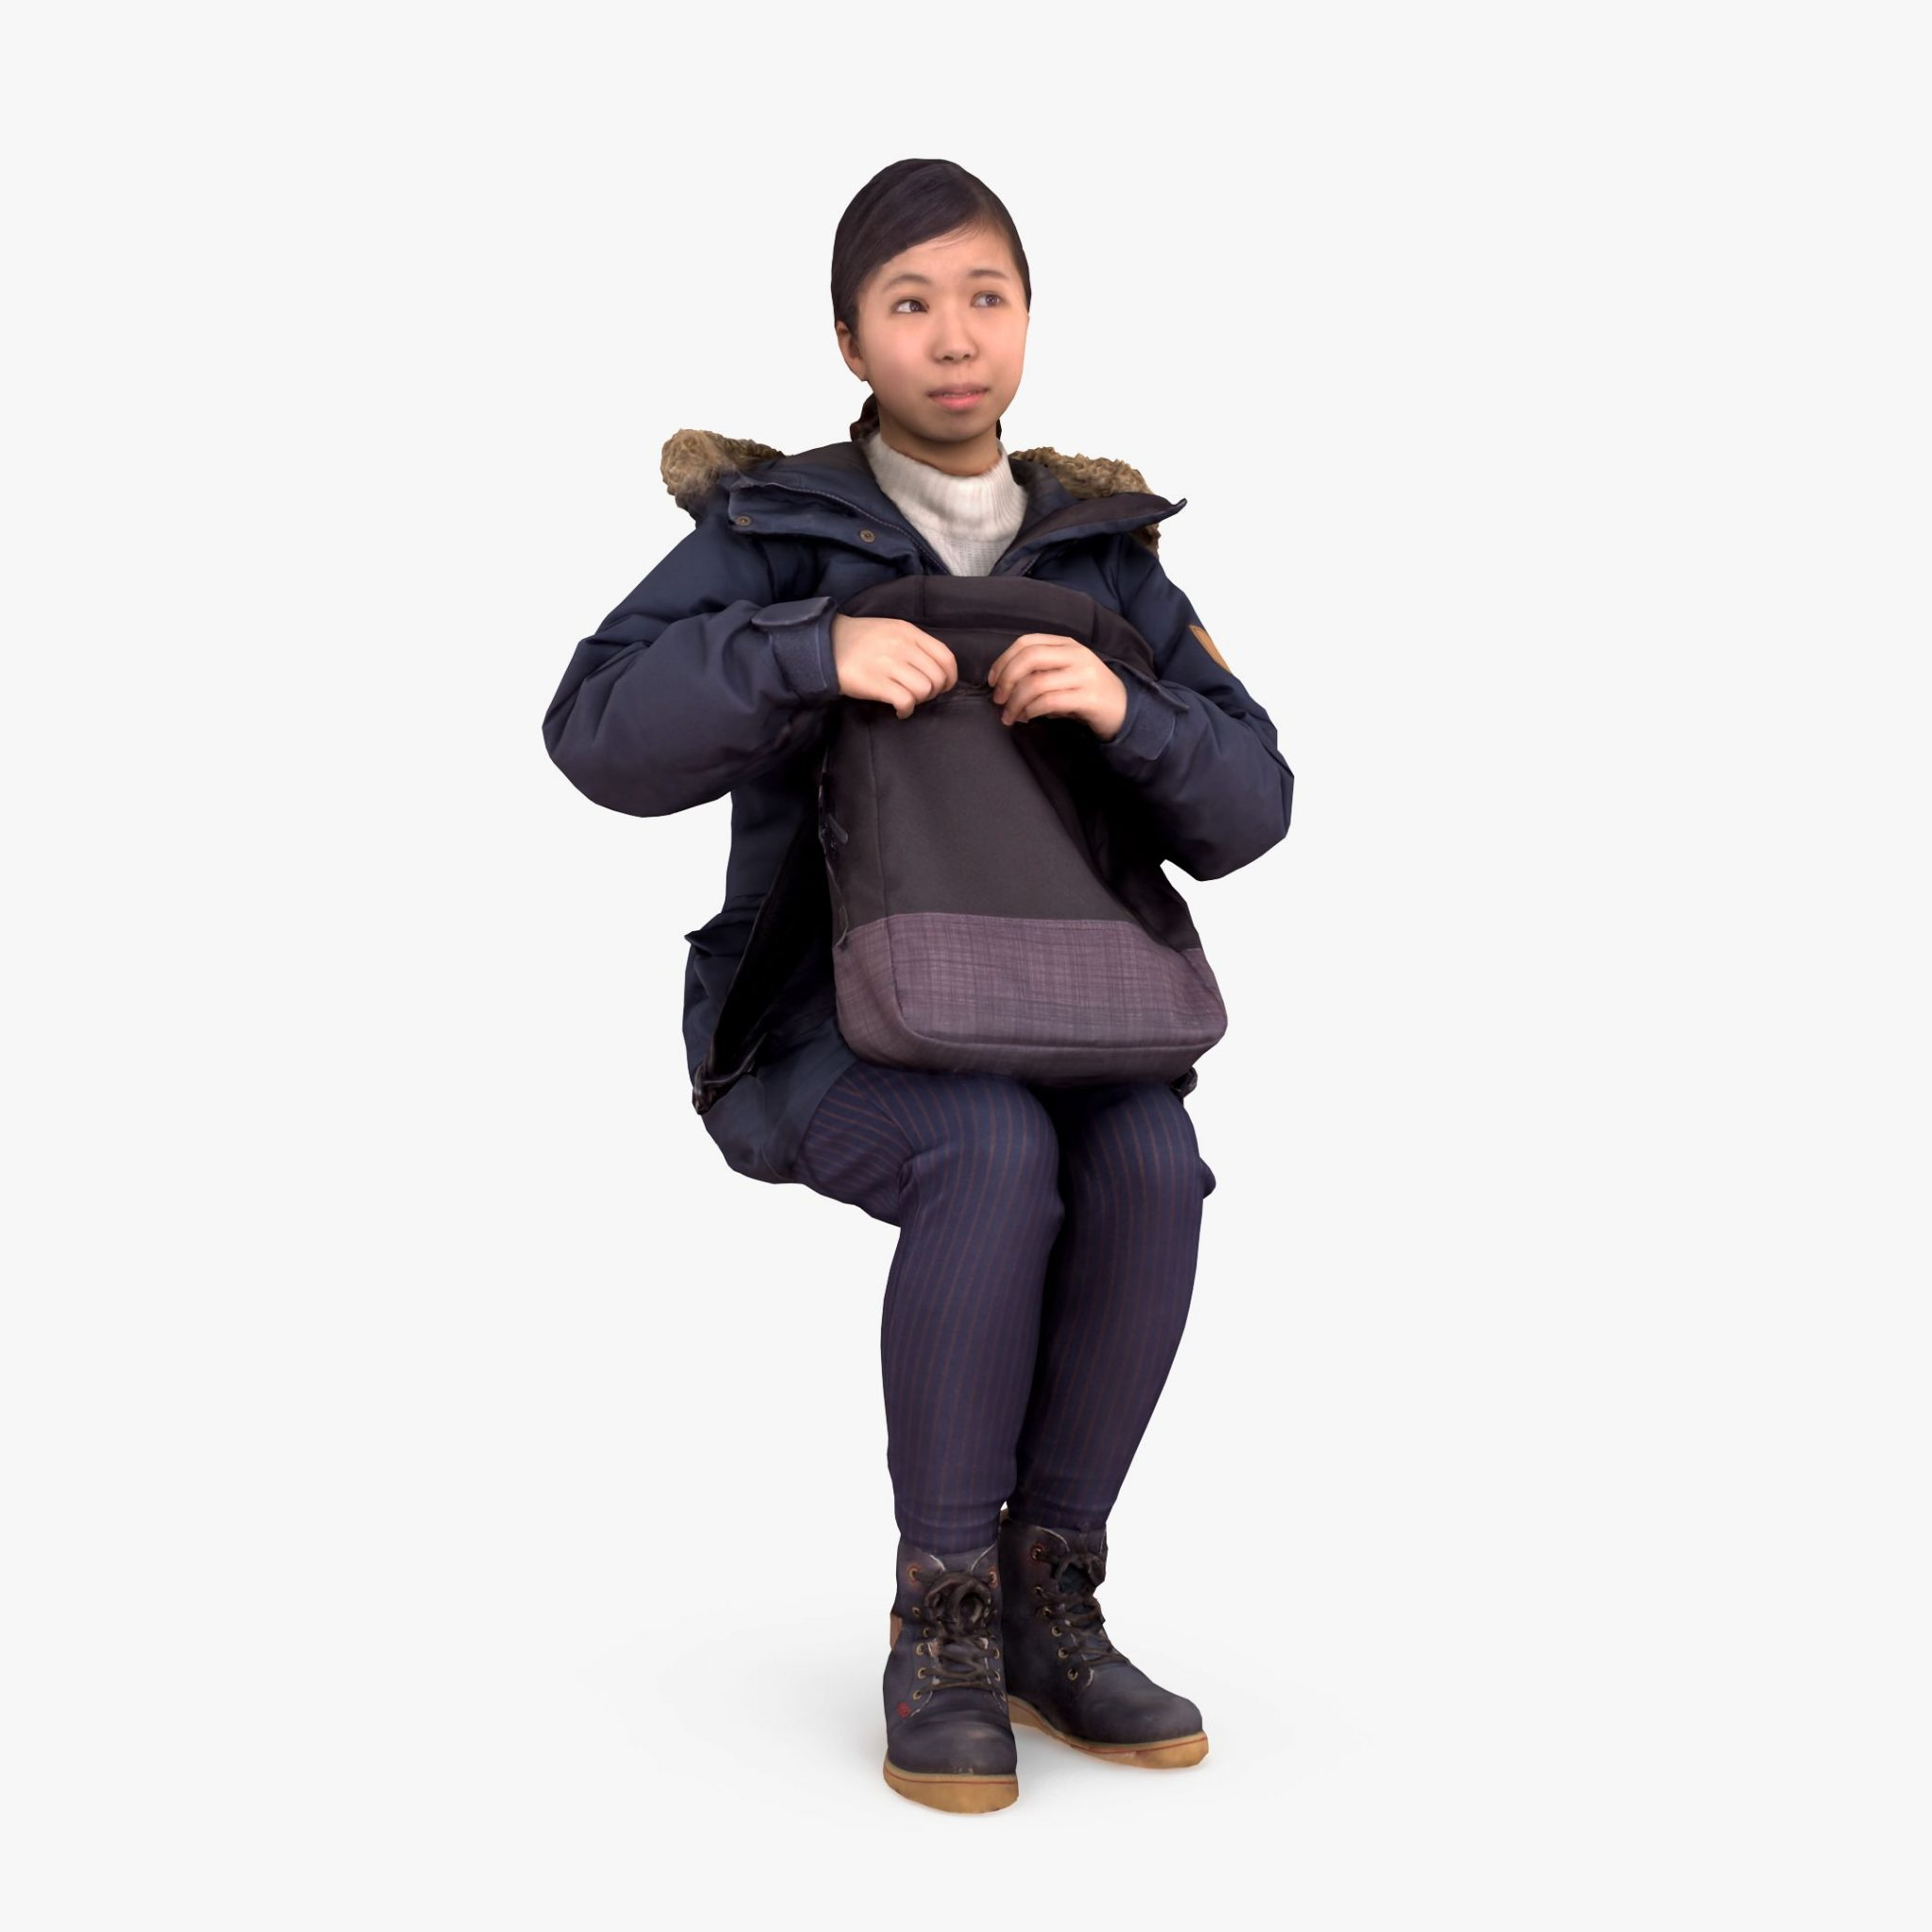 Winter Sitting Girl 3D Model | 3DTree Scanning Studio